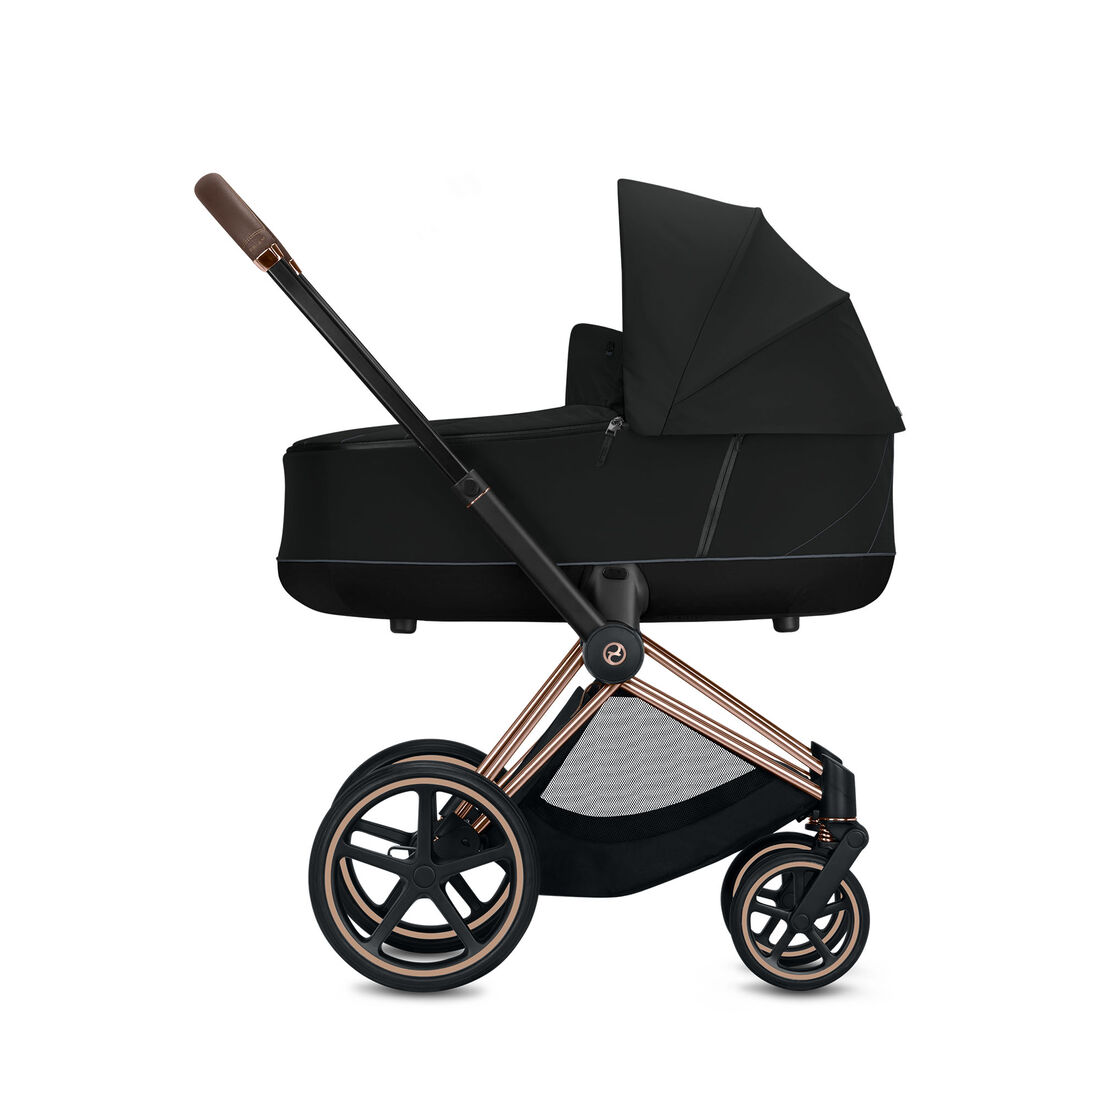 CYBEX Priam Frame - Rosegold in Rosegold large image number 3